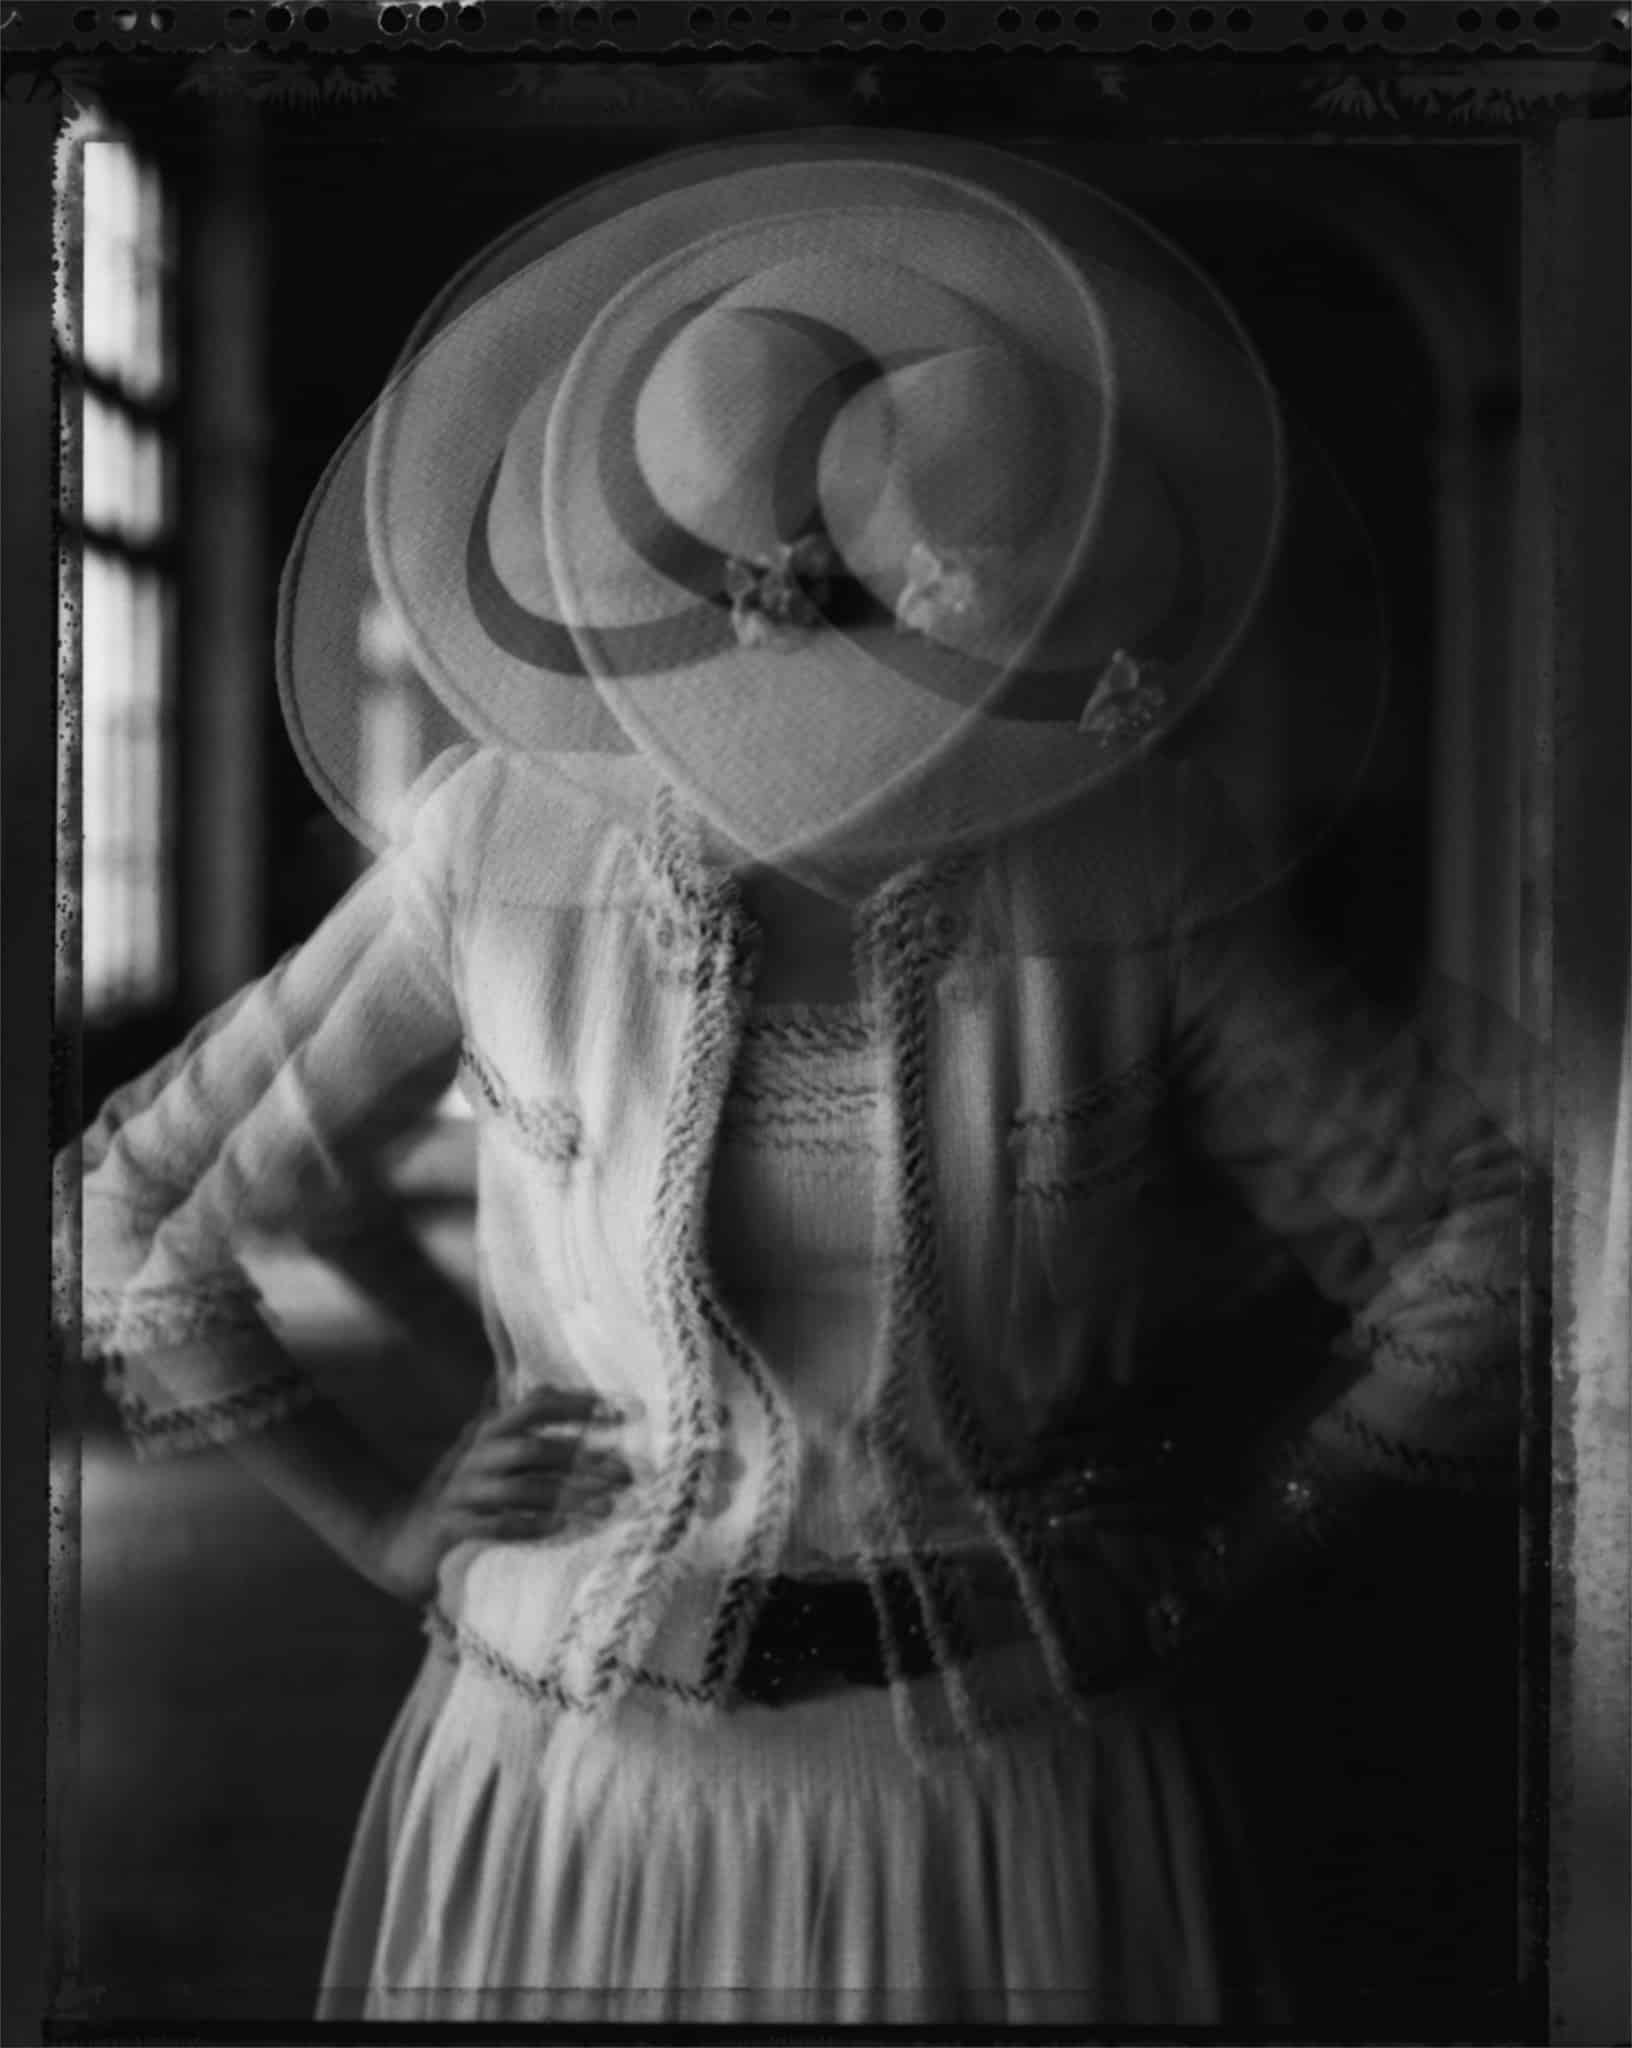 Fine art b/w photography of a fashion model wearing haute couture CHANEL by Karl Lagerfeld, photographed at Theatre de Trianon, Montmartre, Paris.